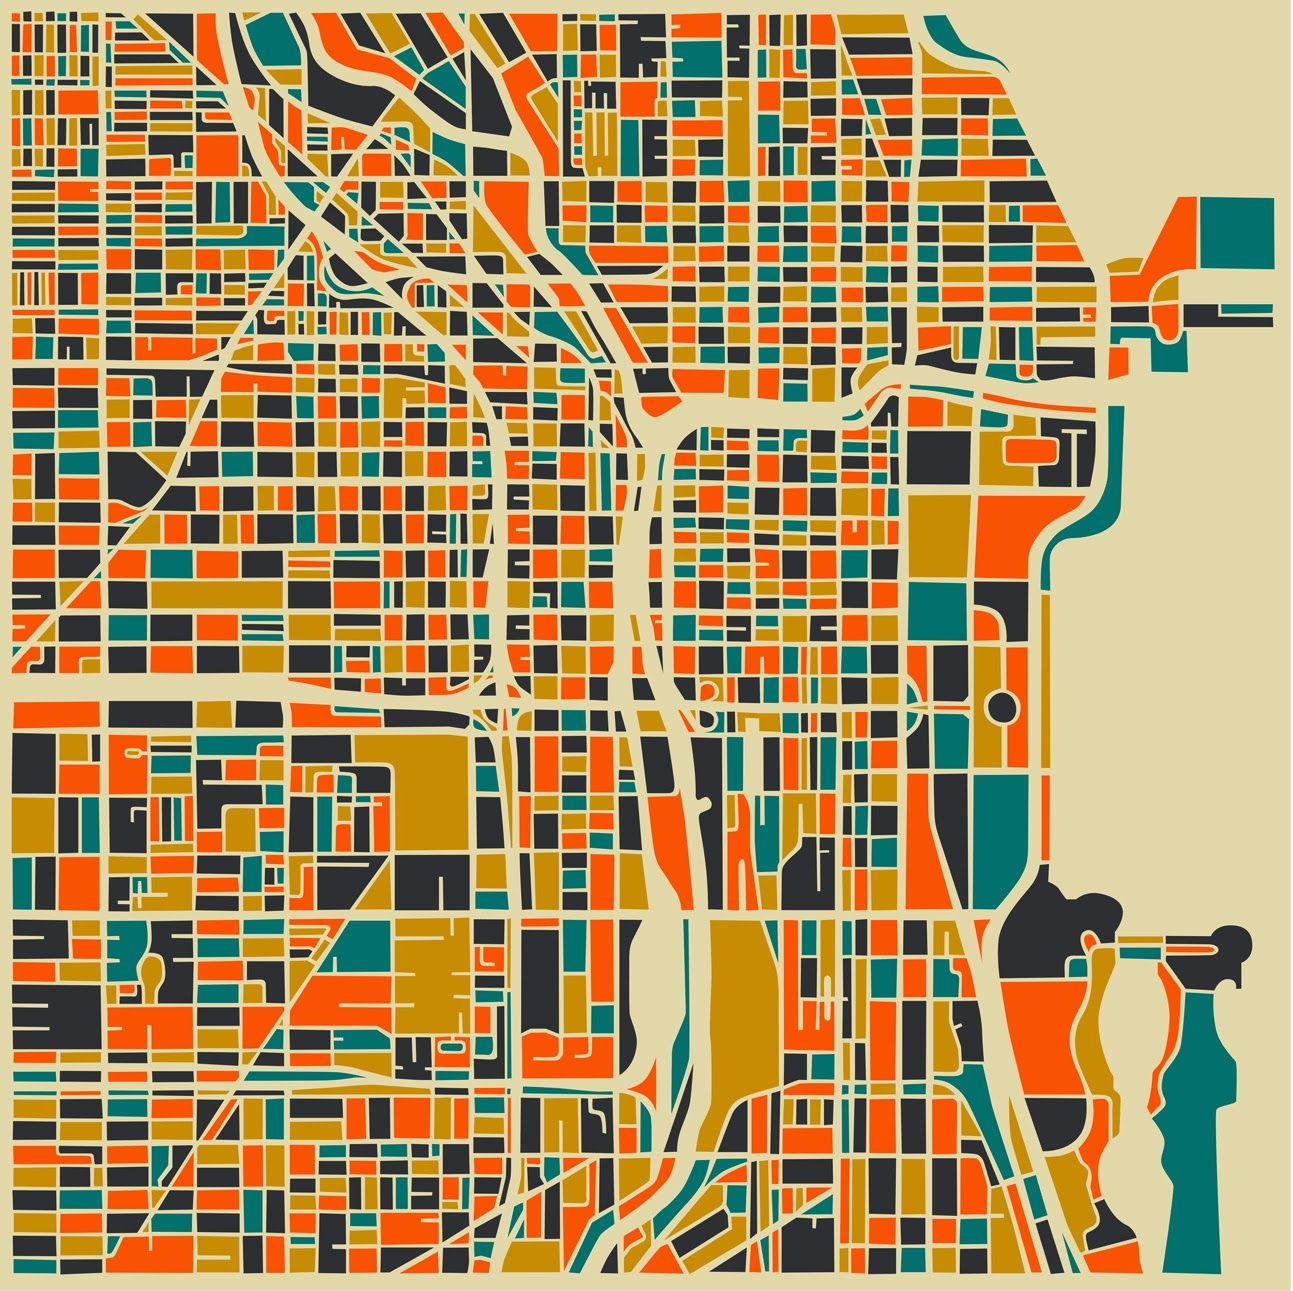 chicago  NOLLI  Pinterest  Chicago and City maps